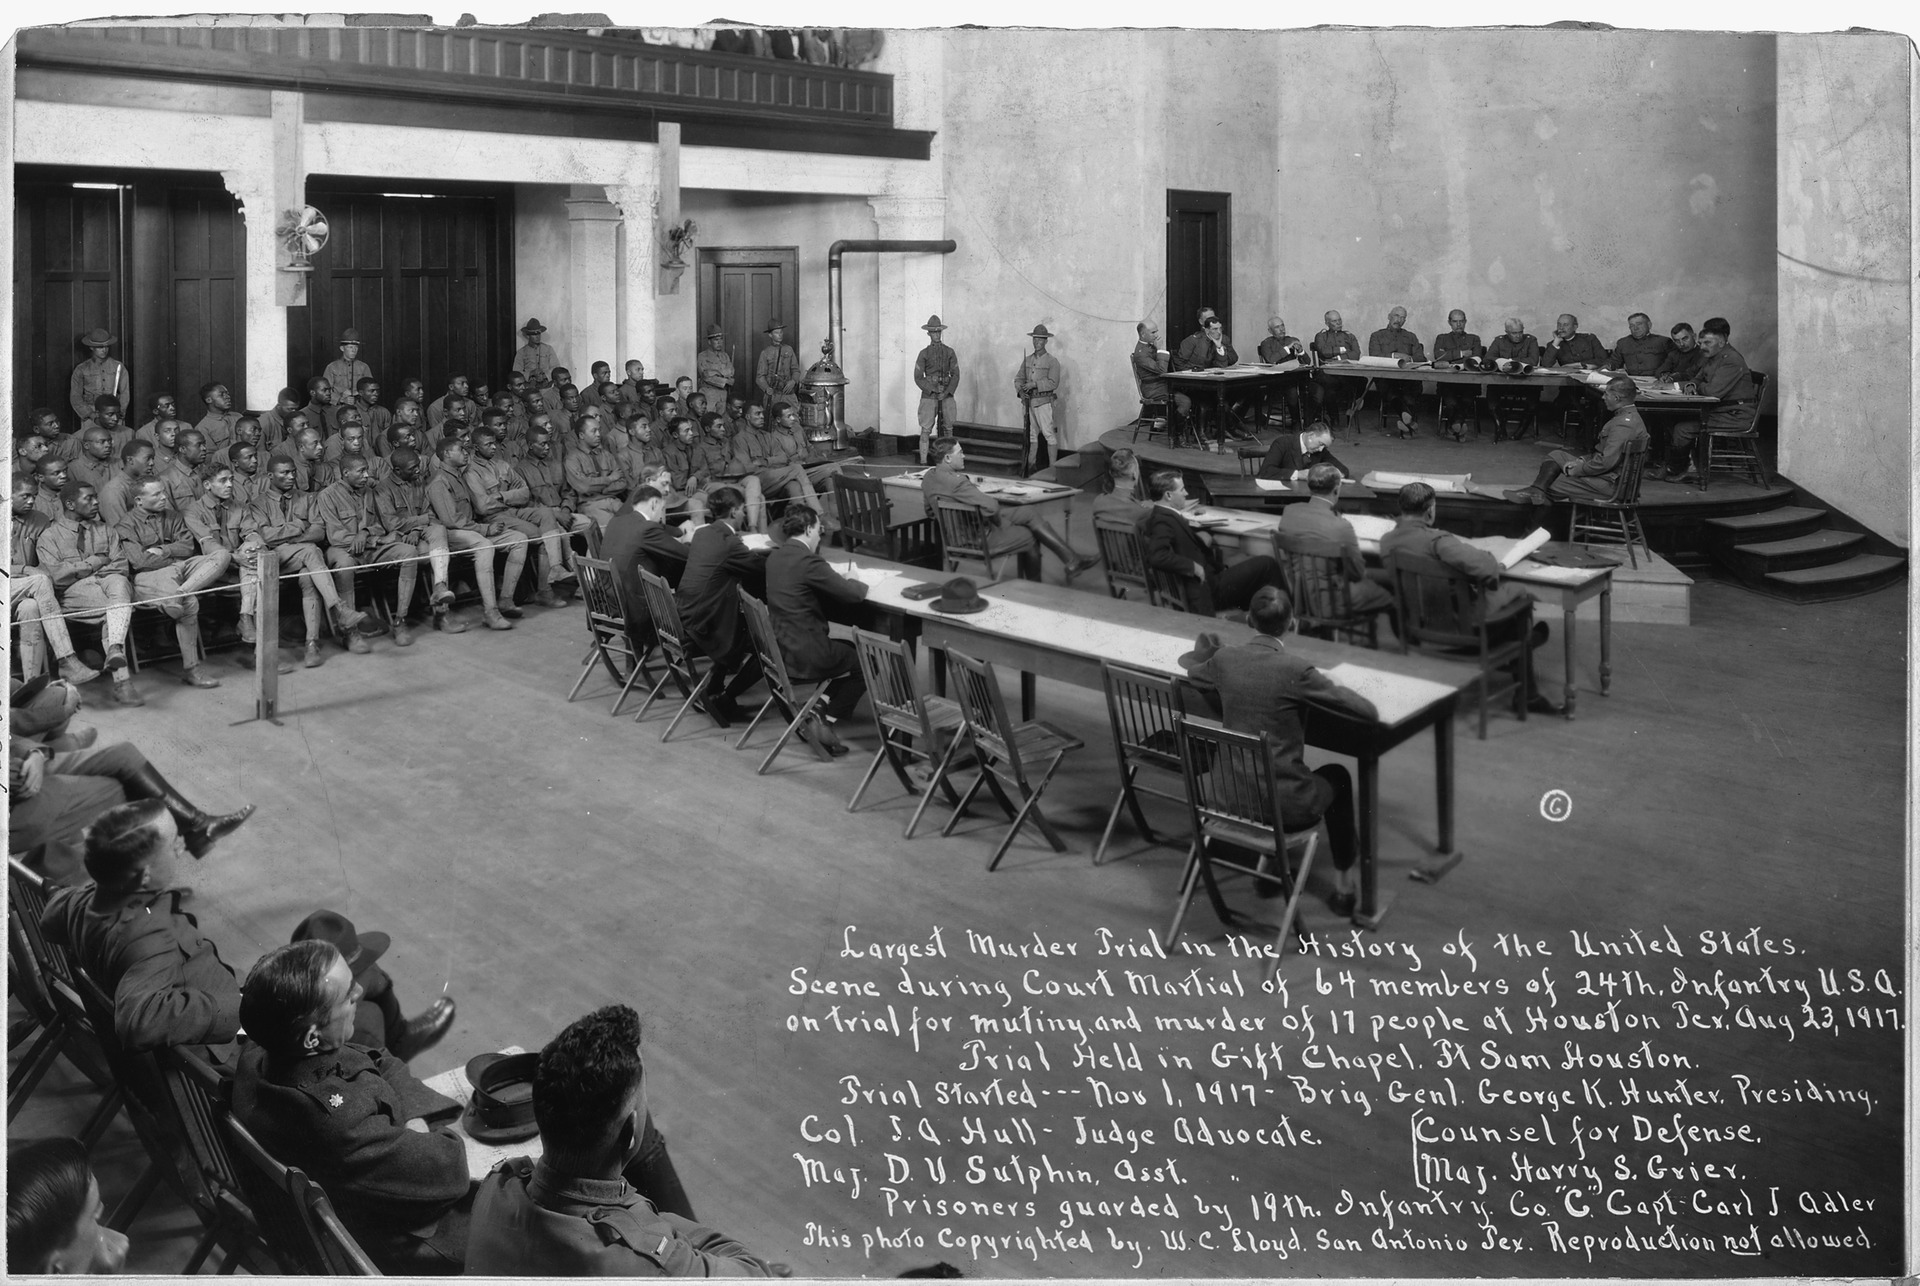 Photo of the court-martial trial. Men of the battalion are located on the left side.